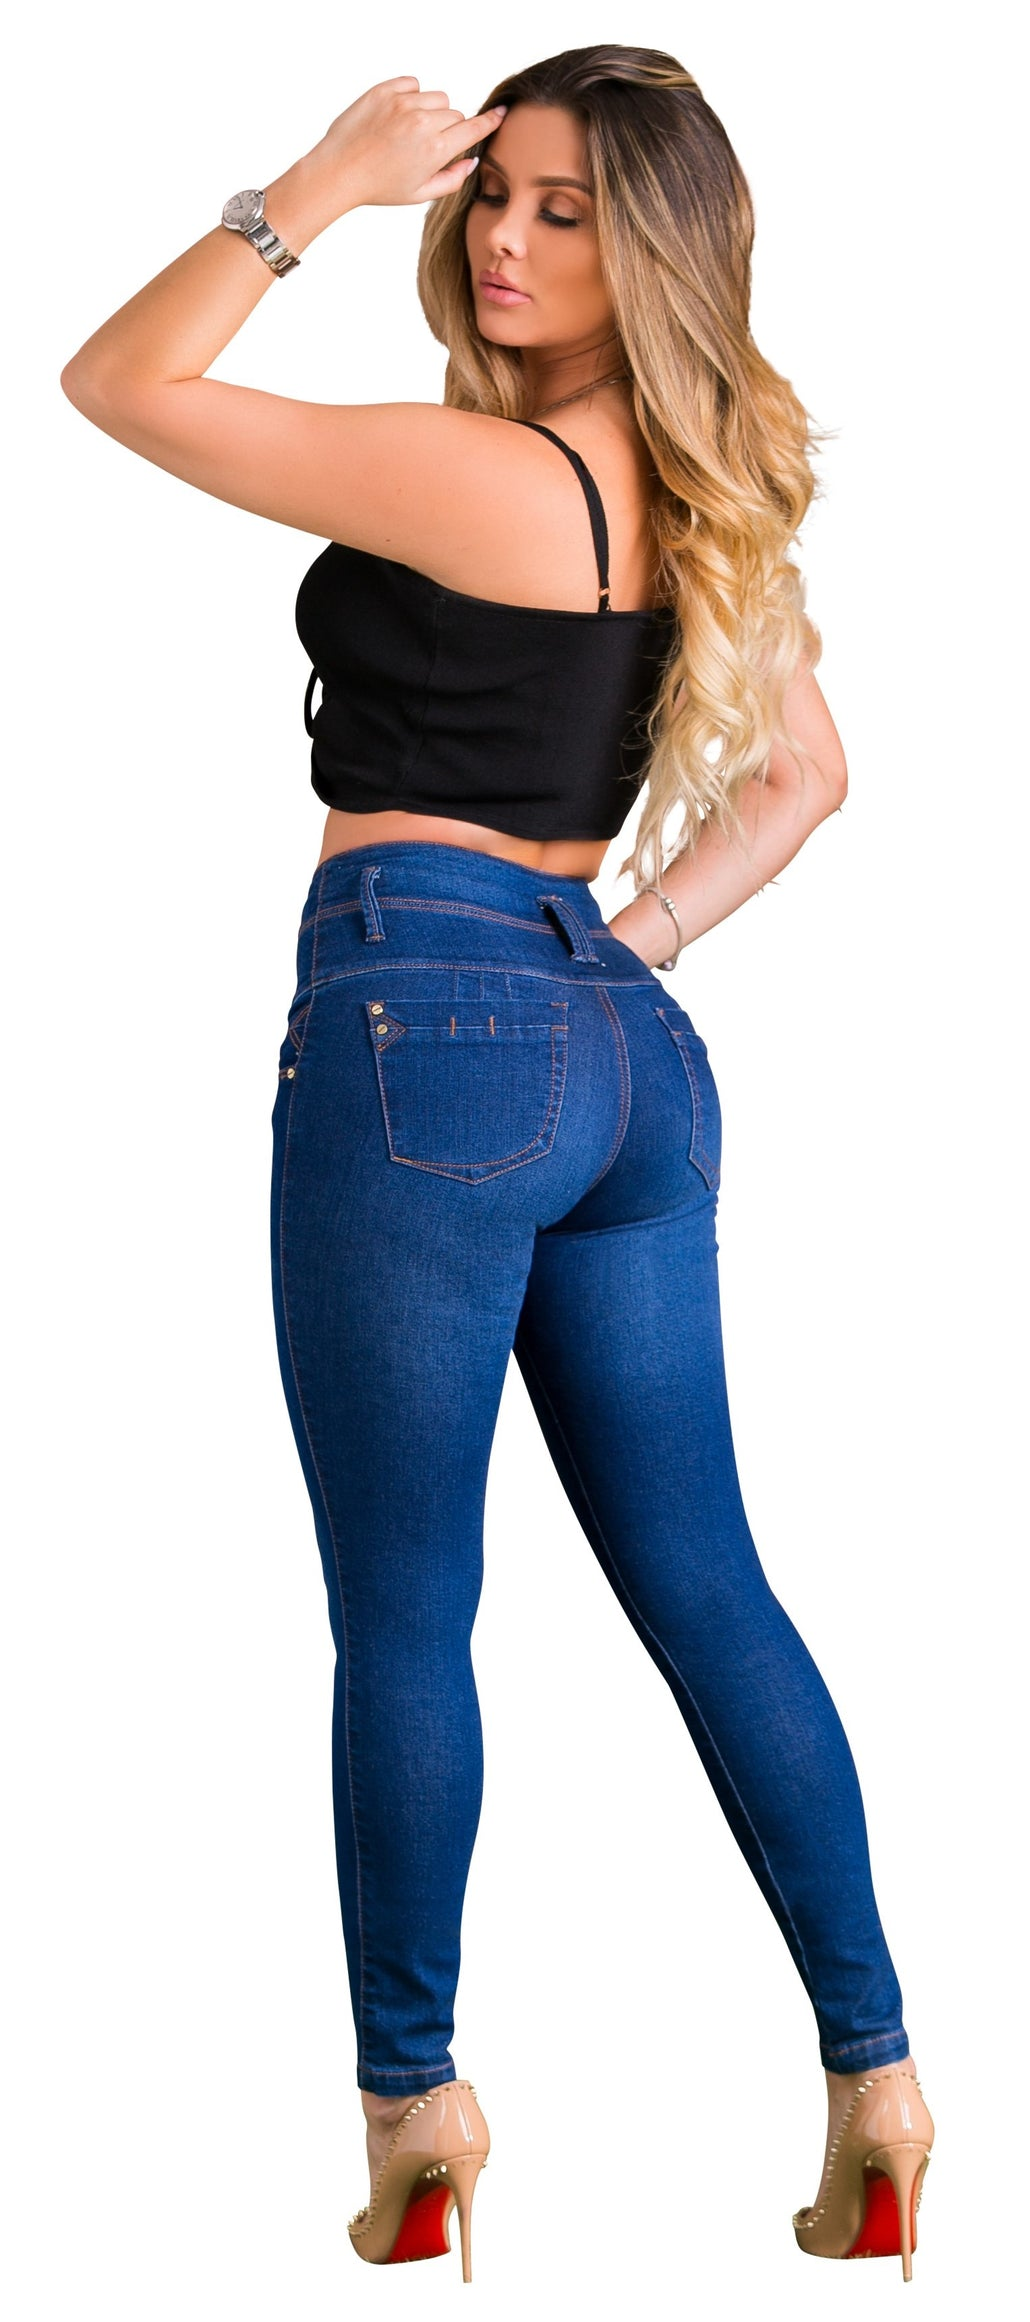 Moda Jeans Trivassi 100% Made in Colombia Butt Lifter Women Jeans with built in shapewear/ fajas/ abdomen control Juniors & Plus- Levantacola- Denim